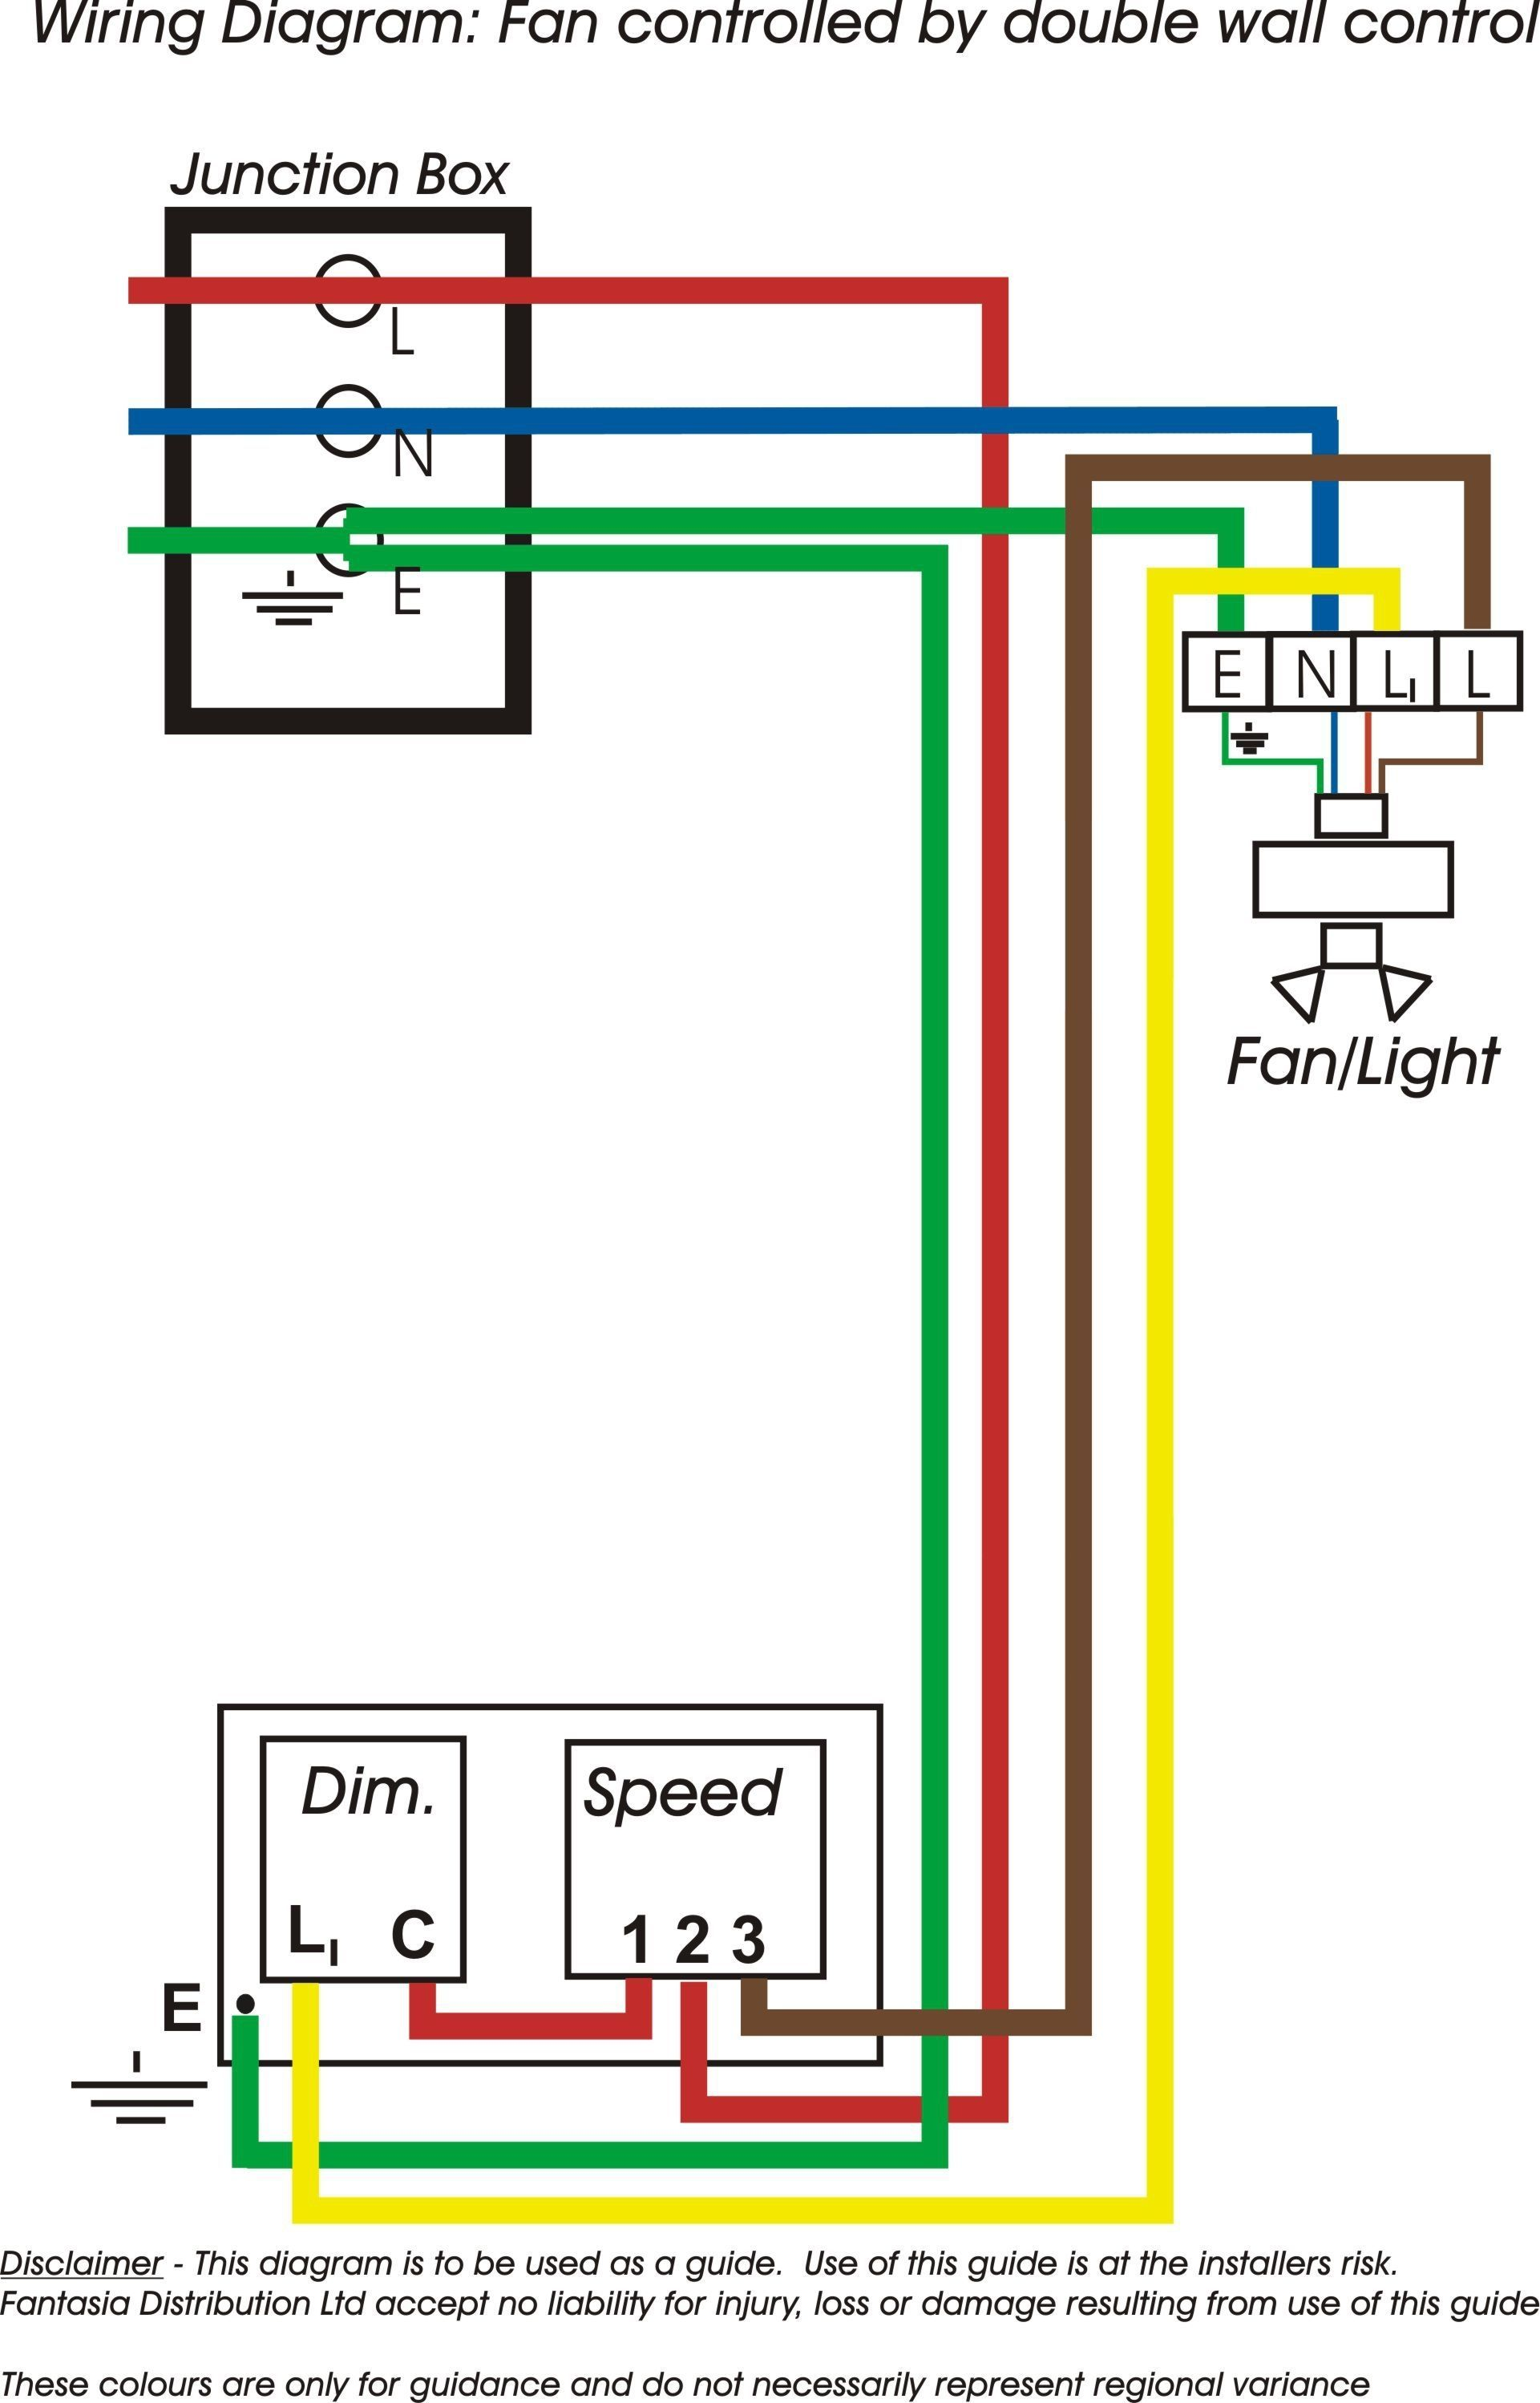 Wiring Diagram For Ceiling Fan With Light : wiring, diagram, ceiling, light, Wiring, Diagram, Ceiling, Remote, Bookingritzcarlton.info, Switch,, Wiring,, Chain